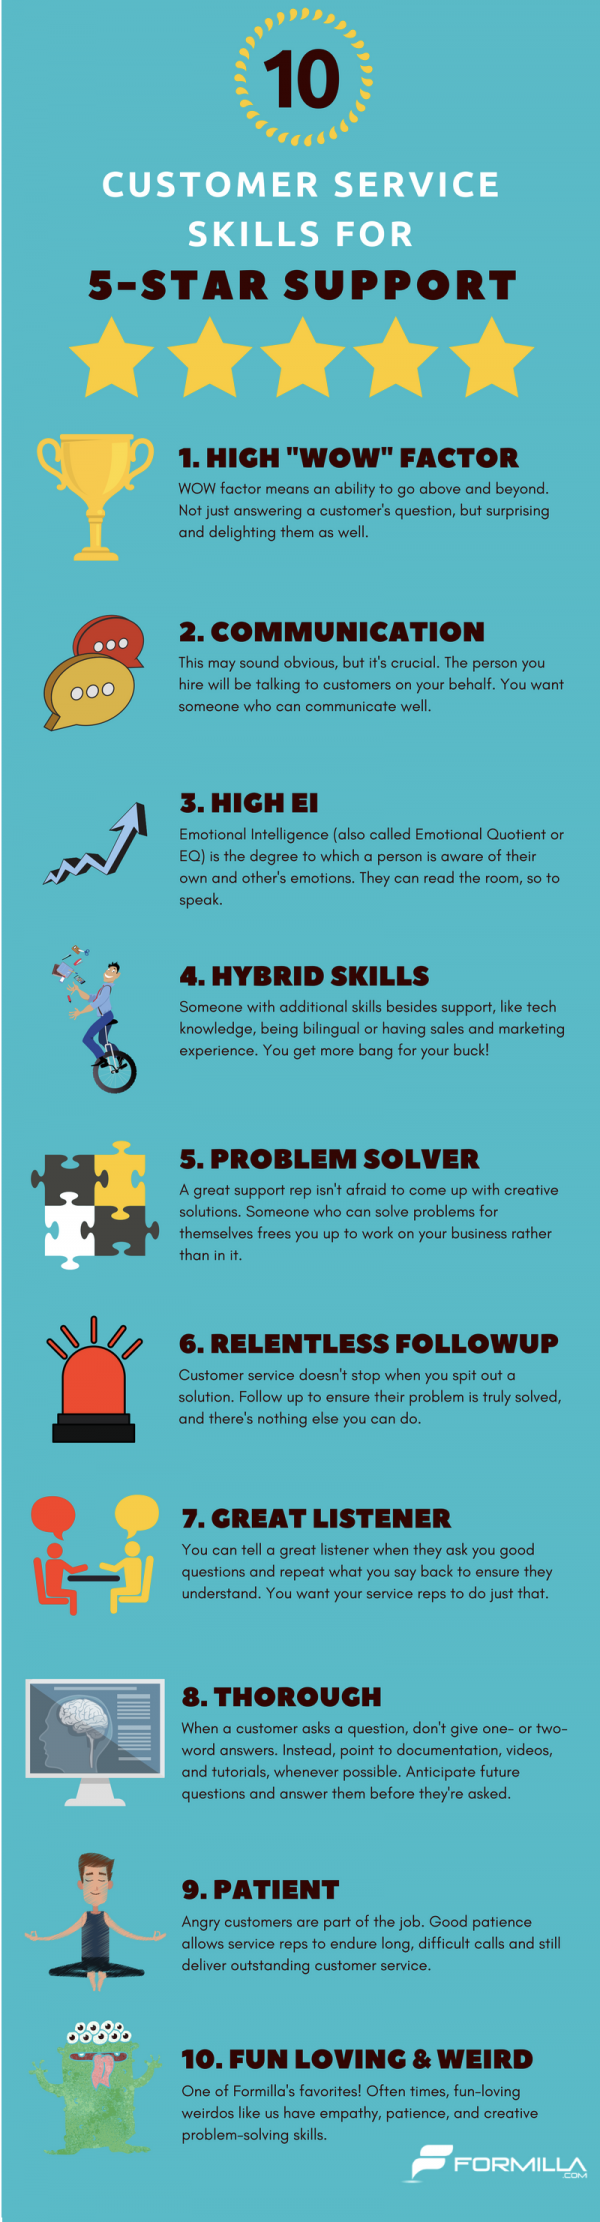 Customer service skills infographic